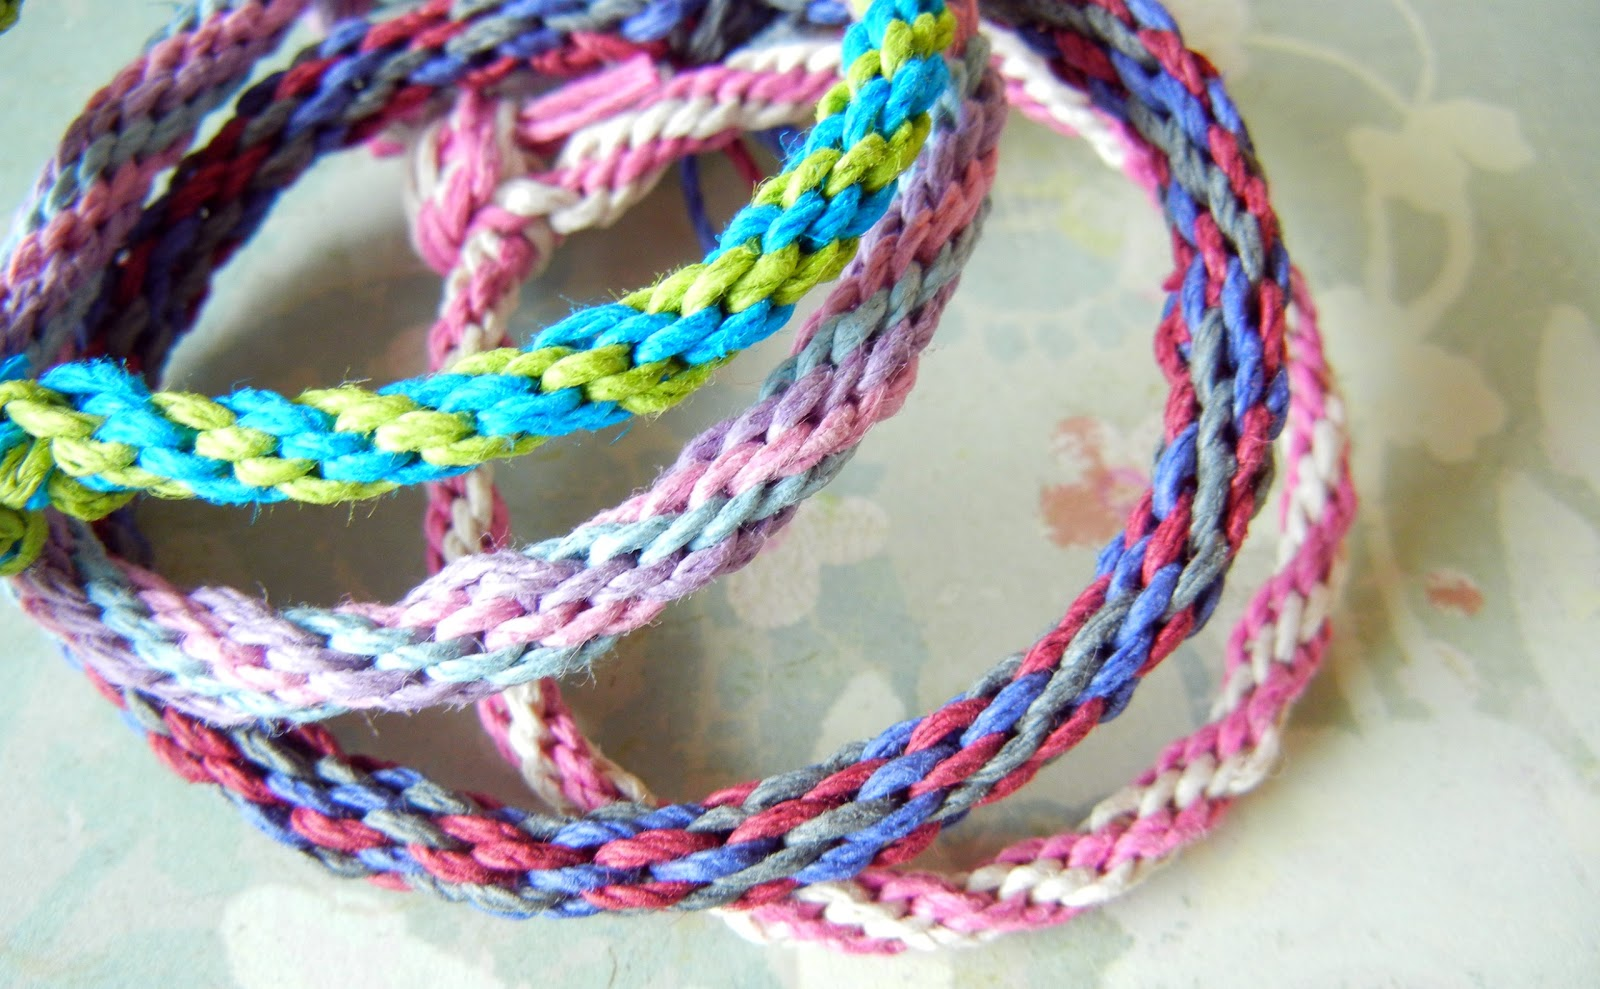 hippy tassel women men dropshipping bracelet amiu item hippie embroidery in boho rope from bracelets string for wrap woven friendship charm jewelry cotton handmade and colorful